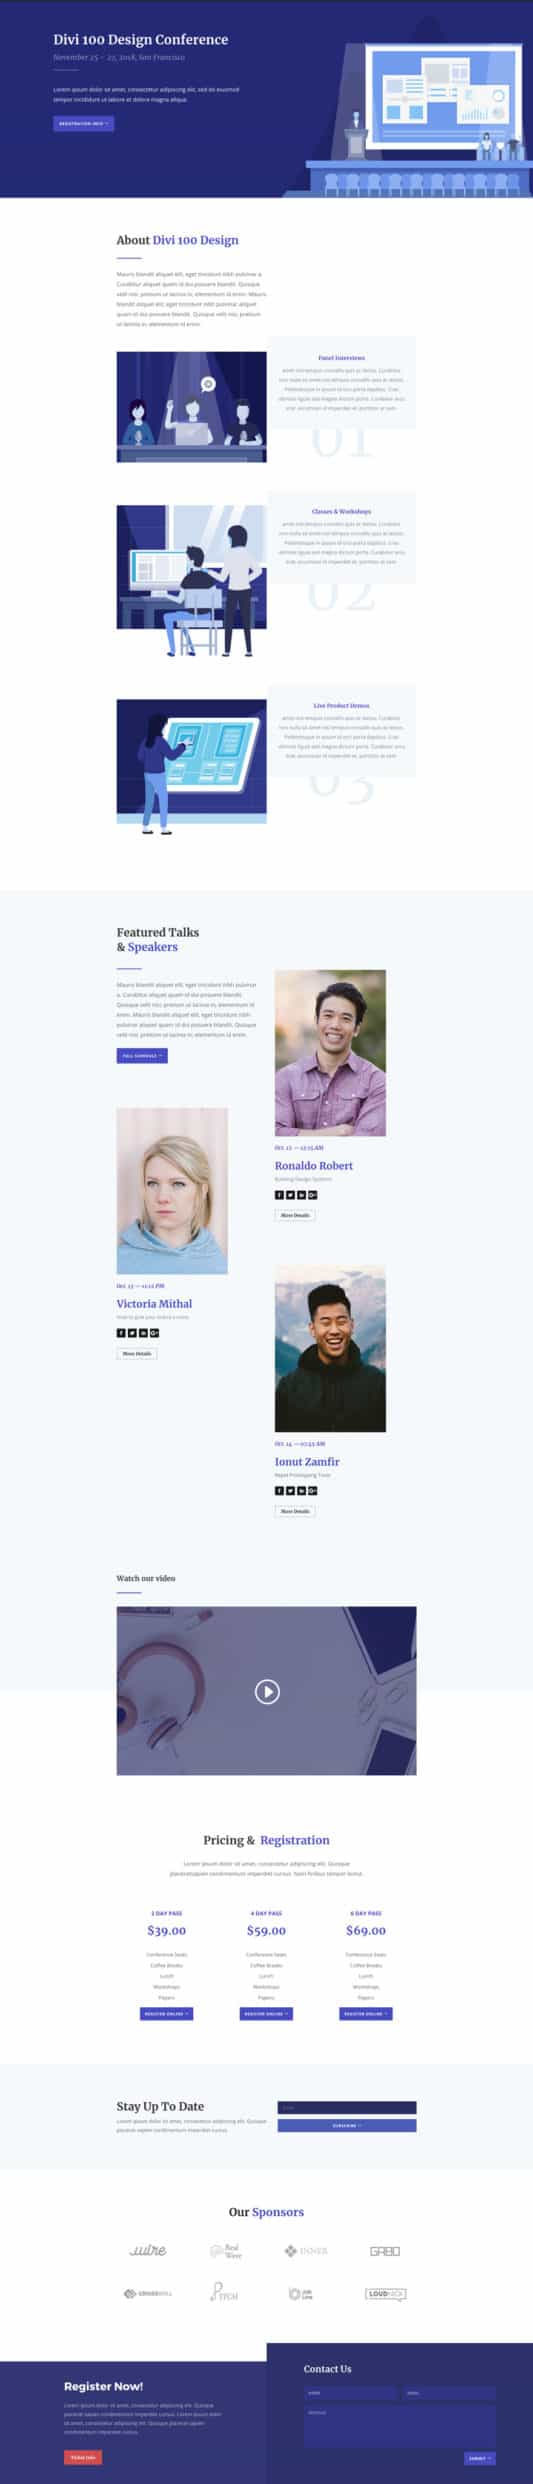 The Design Conference Page Style: Homepage Design 1